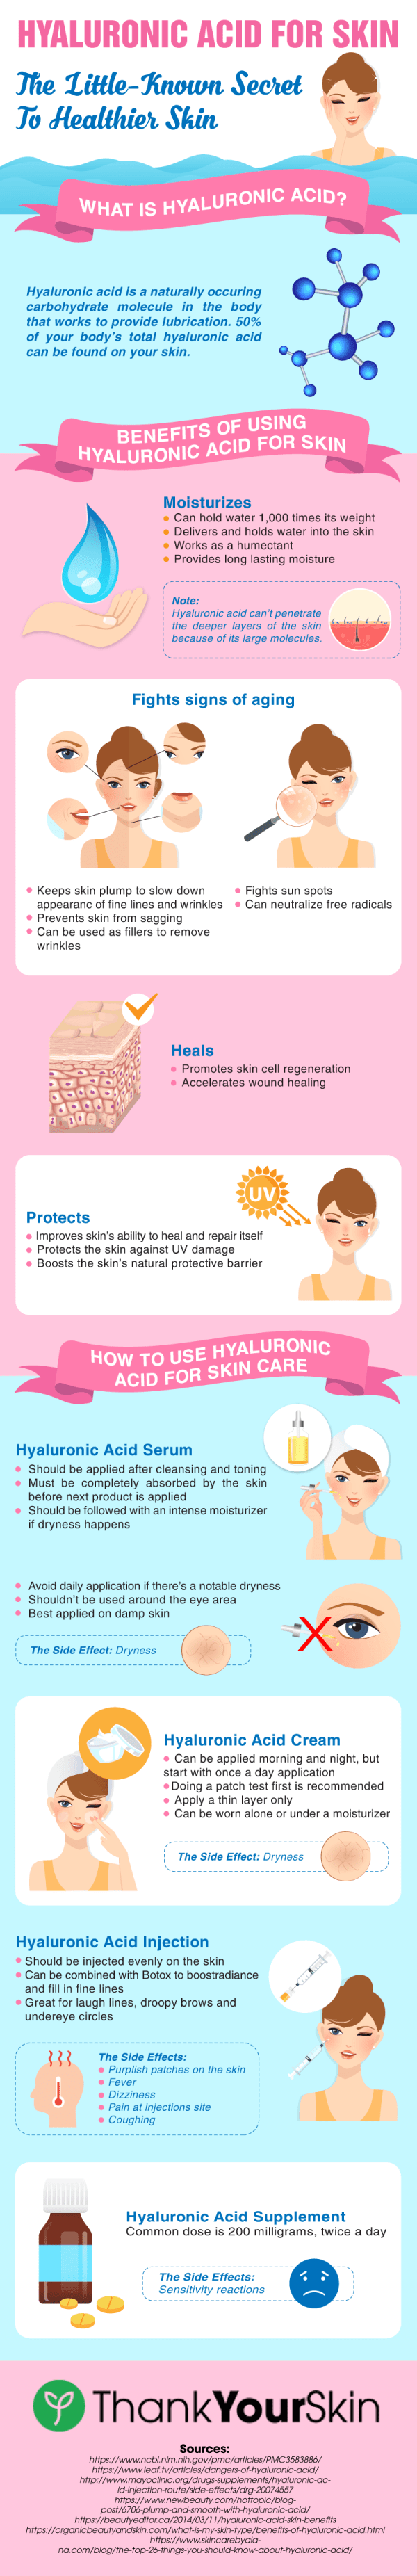 Hyaluronic Acid For Skin: The Little-Known Secret To Healthier Skin